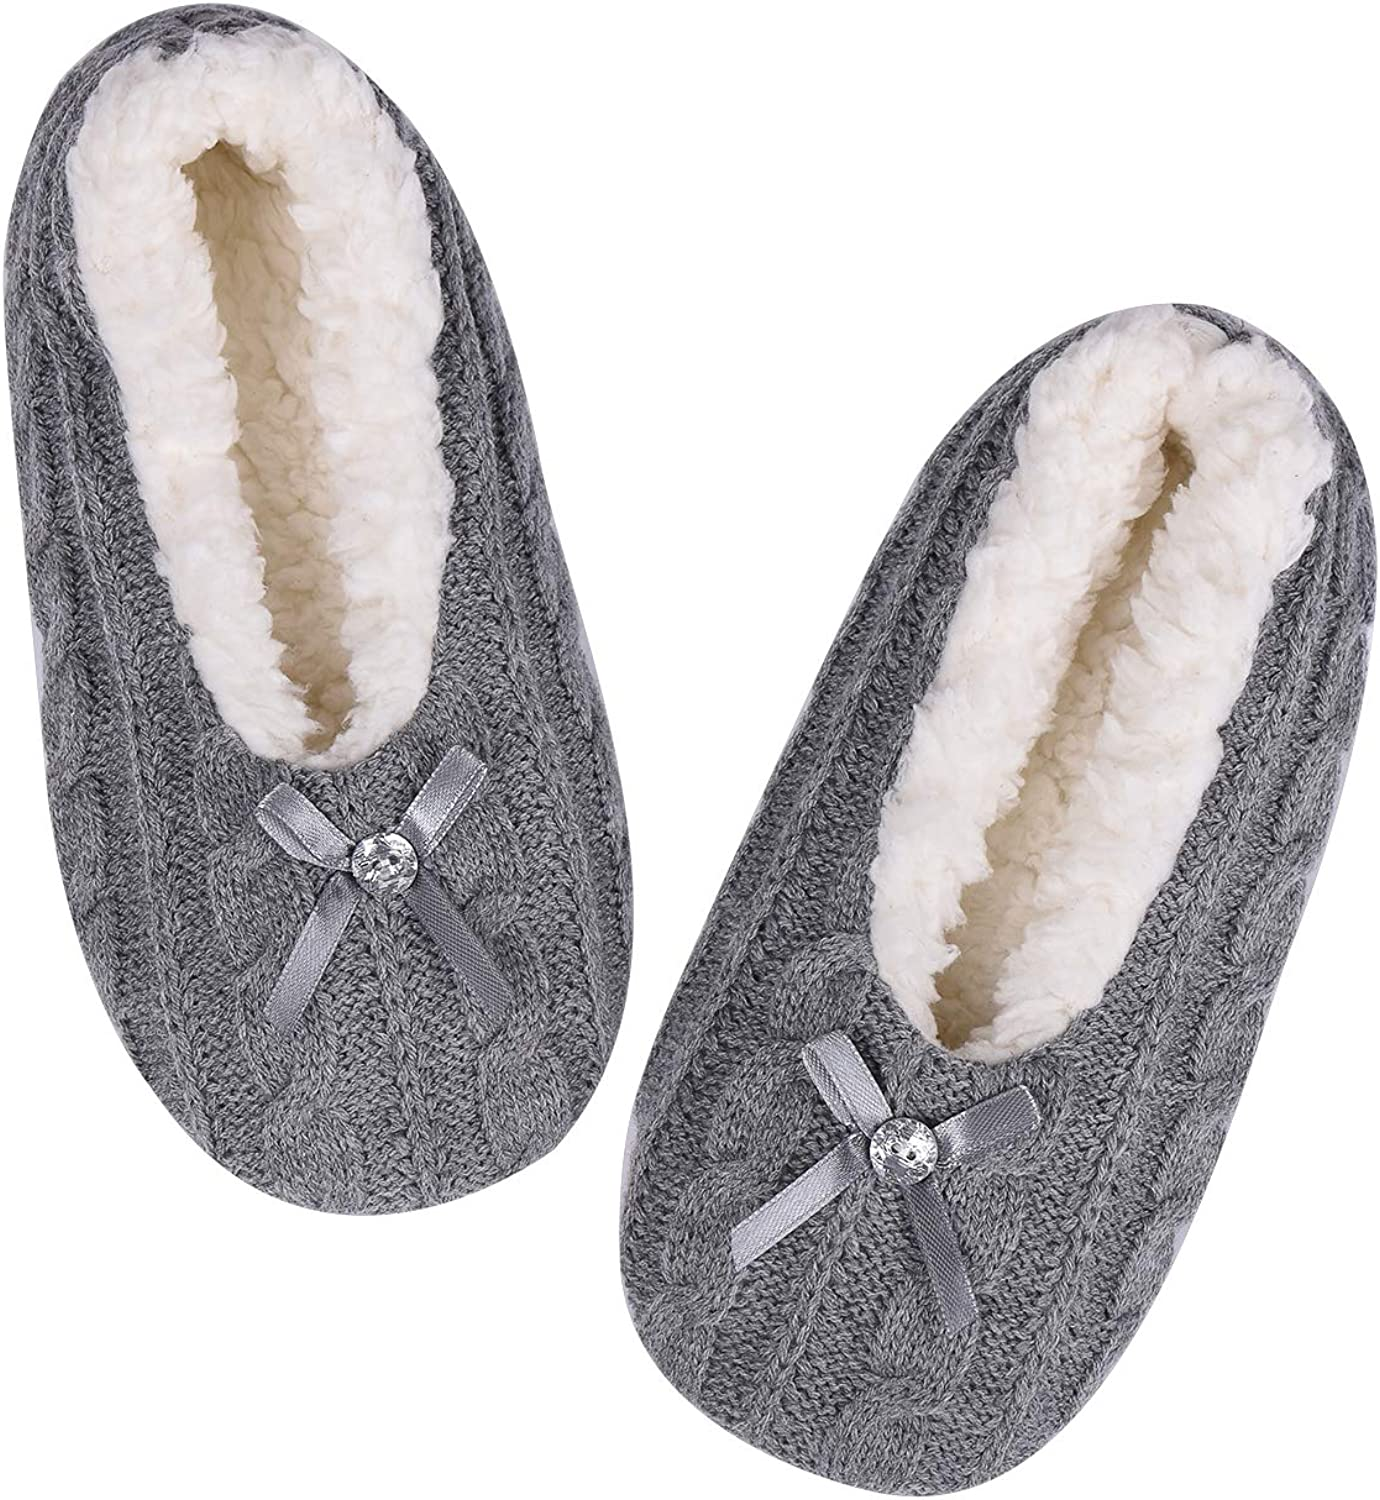 ALLBEST Womens Thick Warm Slipper Max 5% OFF 86% OFF - with Socks House Grippers